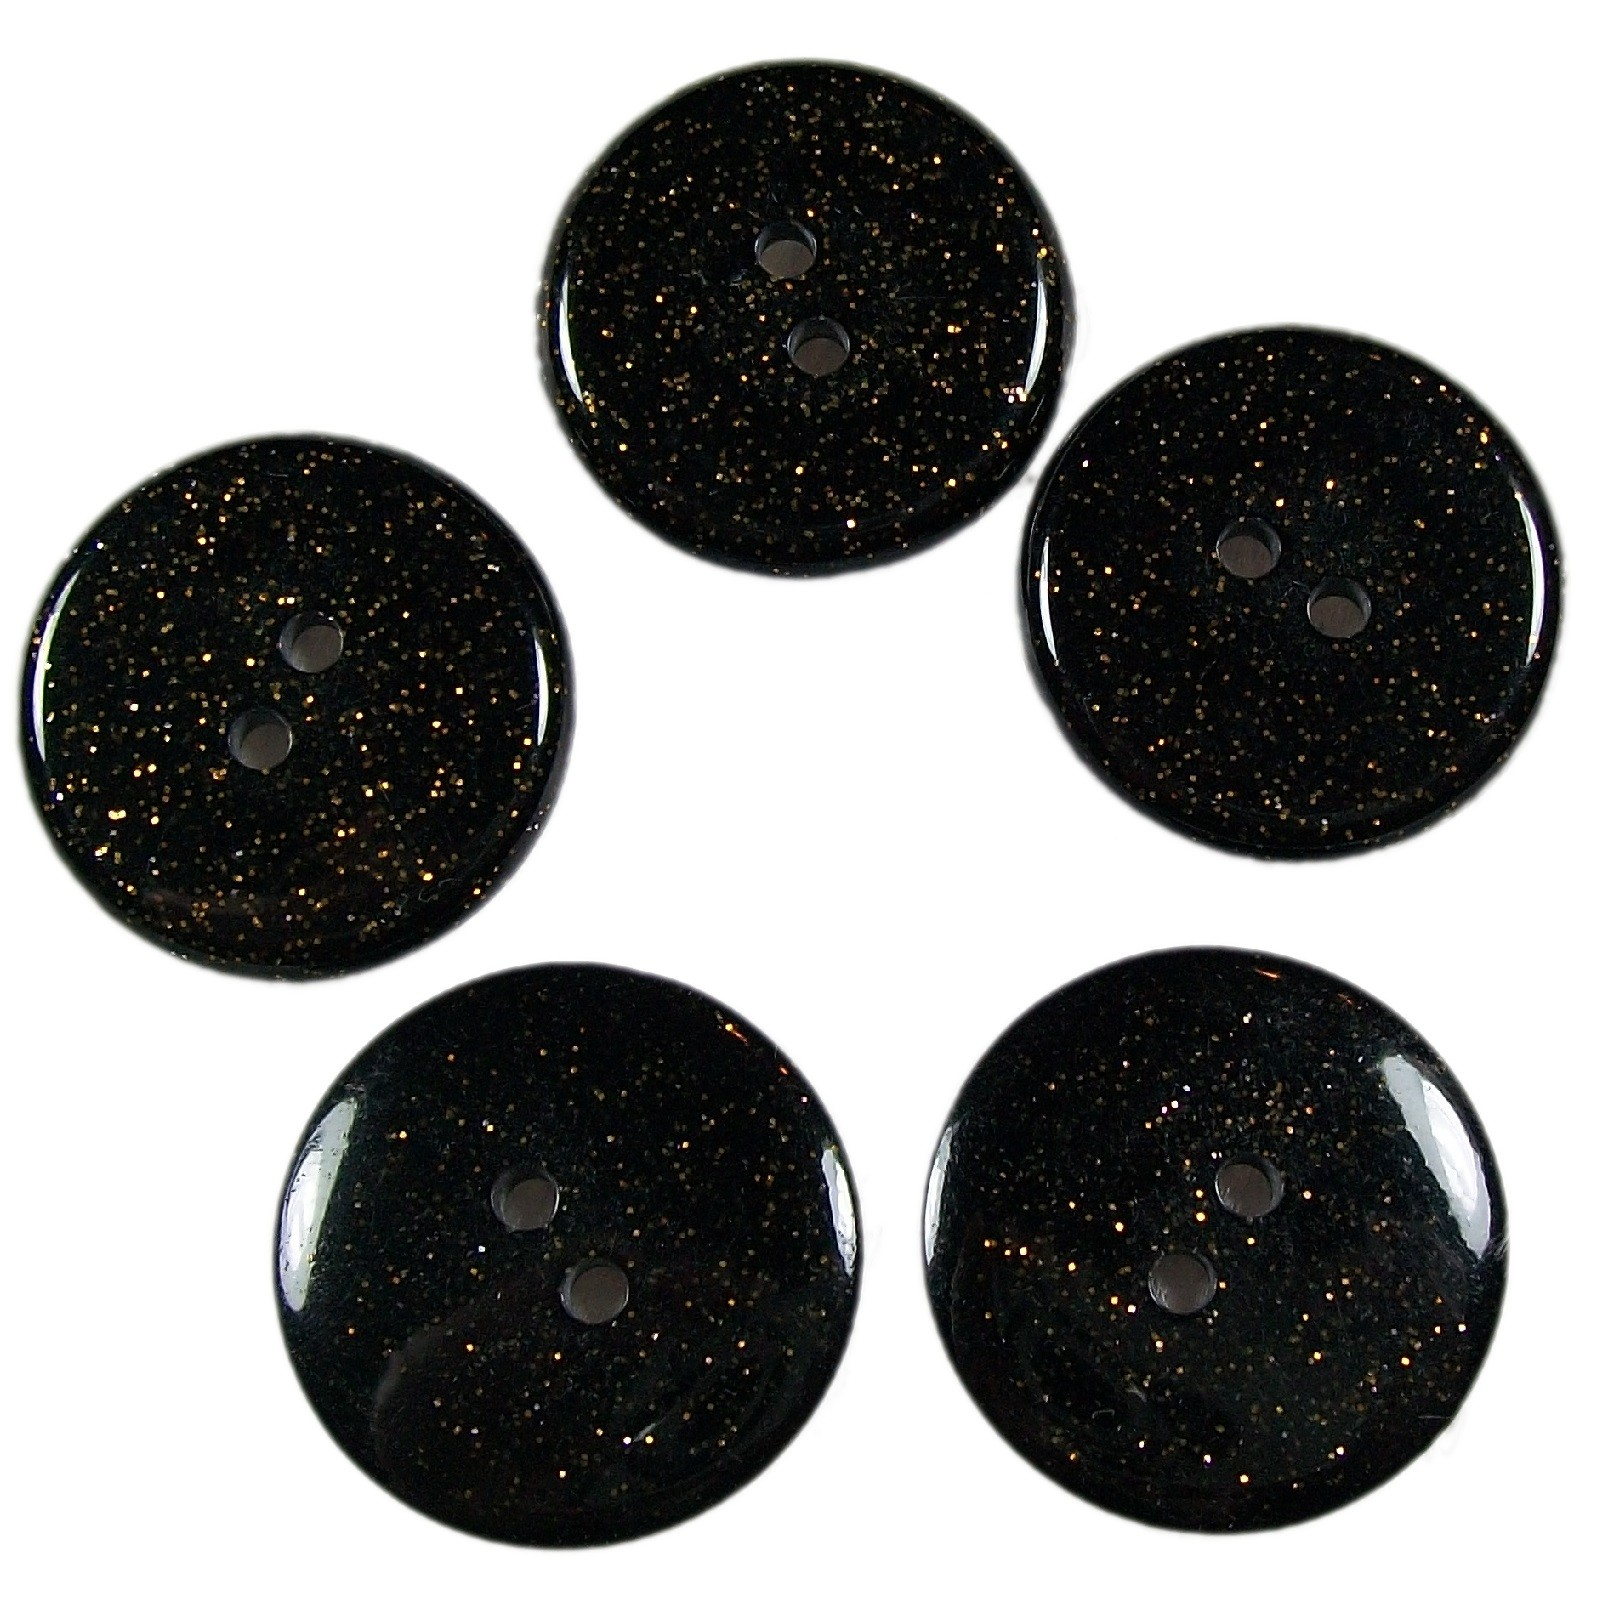 Dark Glitter Buttons 25mm Black Pack of 5